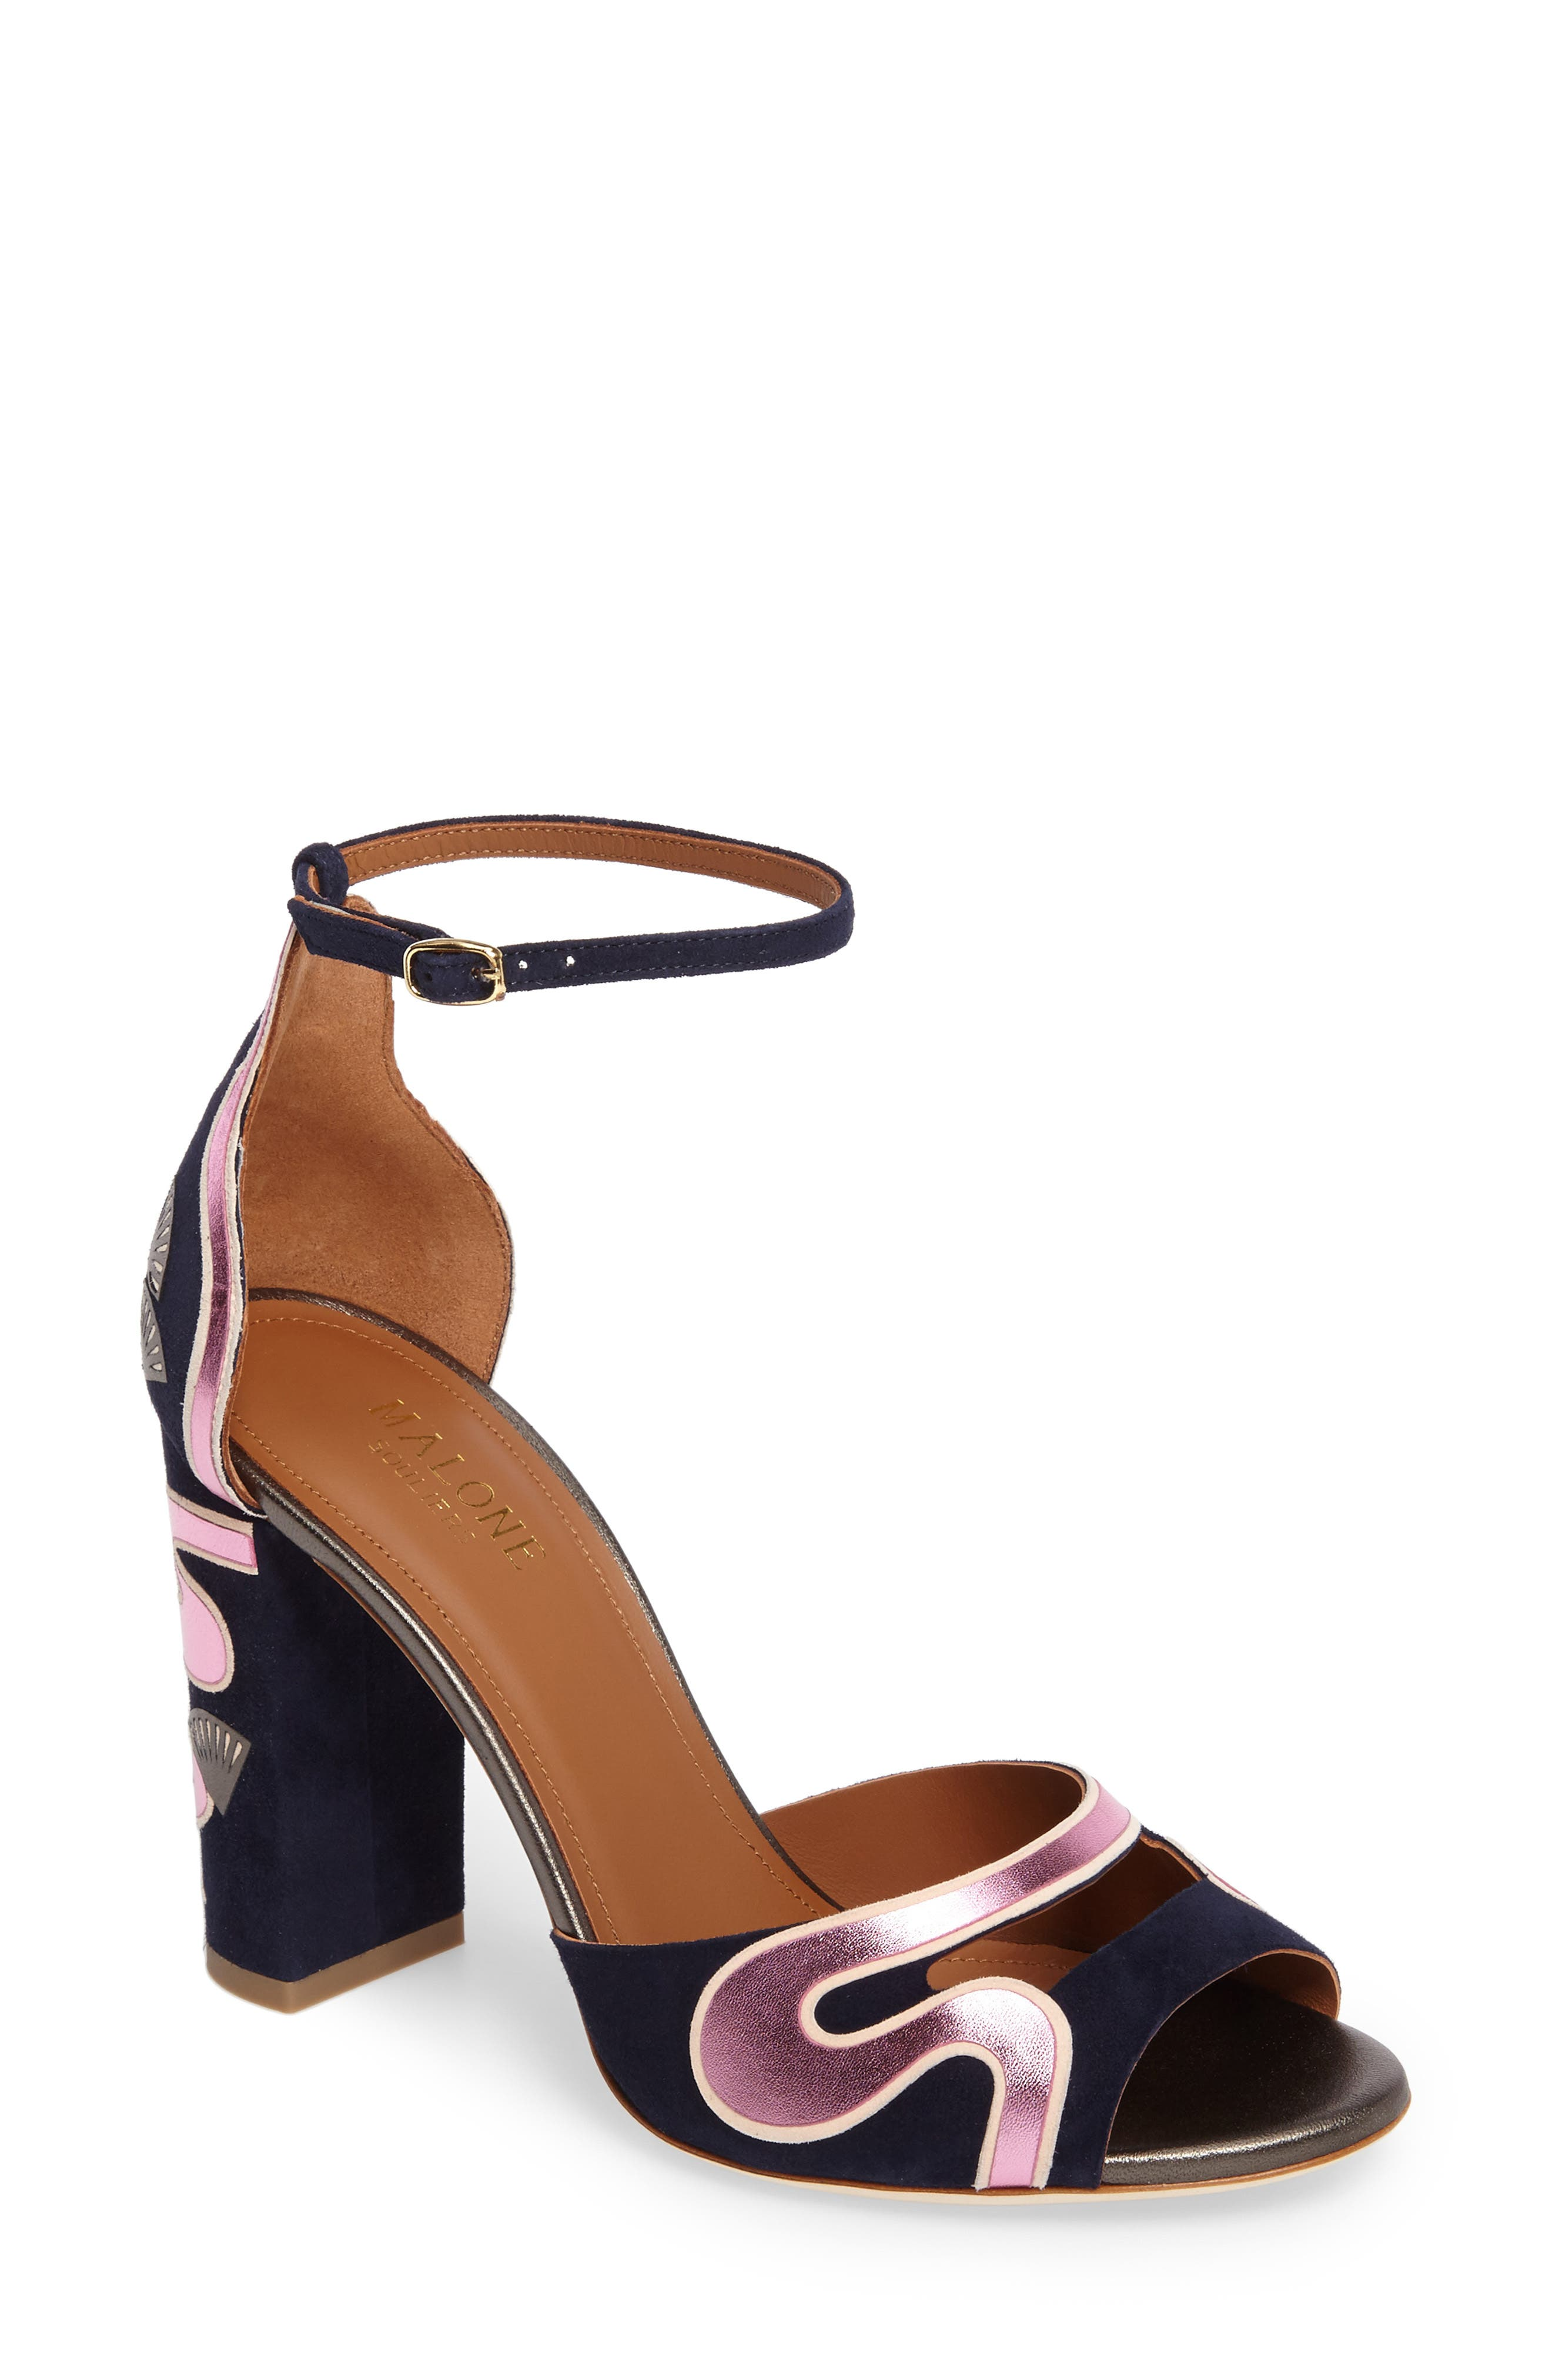 Alternate Image 1 Selected - Malone Souliers Nina Chunky Heel Sandal (Women)